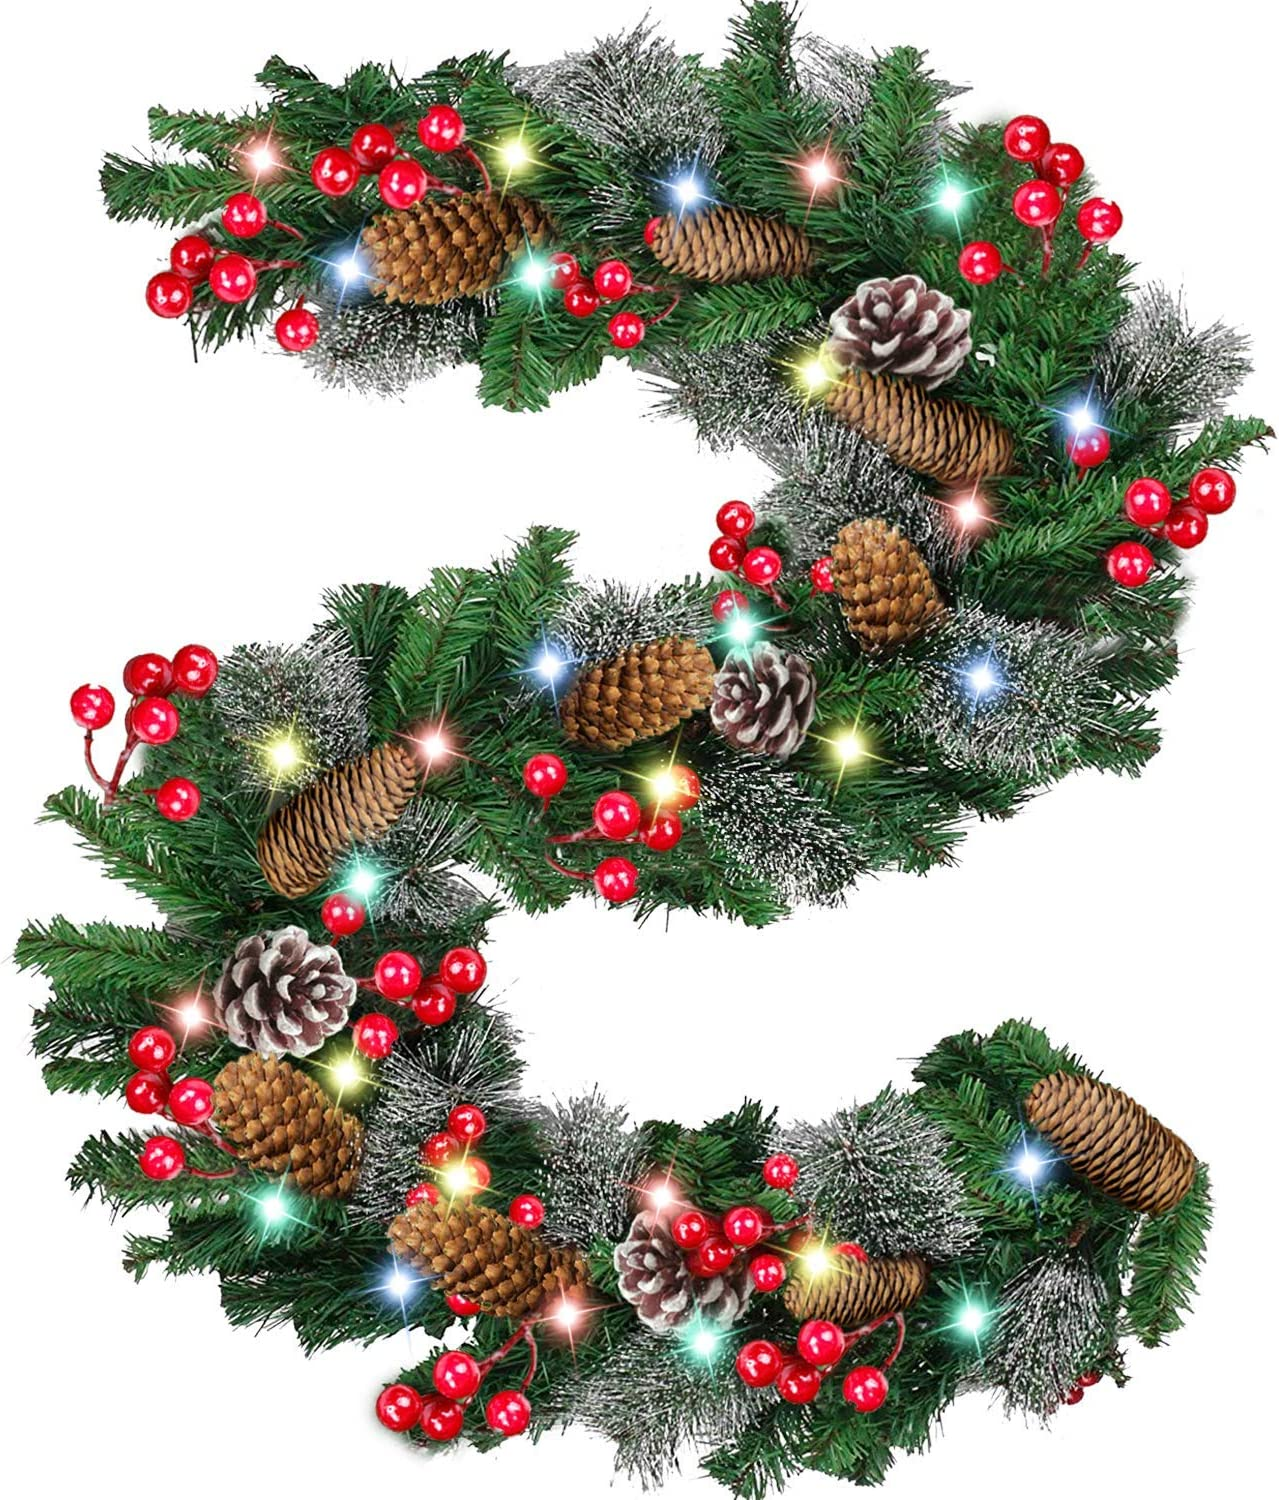 9 Foot by 10 Inch 100 LED Christmas Garland Battery Operated with Lights,Prelit Christmas Garland Greenery Outdoor Lighted Pine Garland, Mantle Garland Christmas Holiday Decoration Indoor (Color)